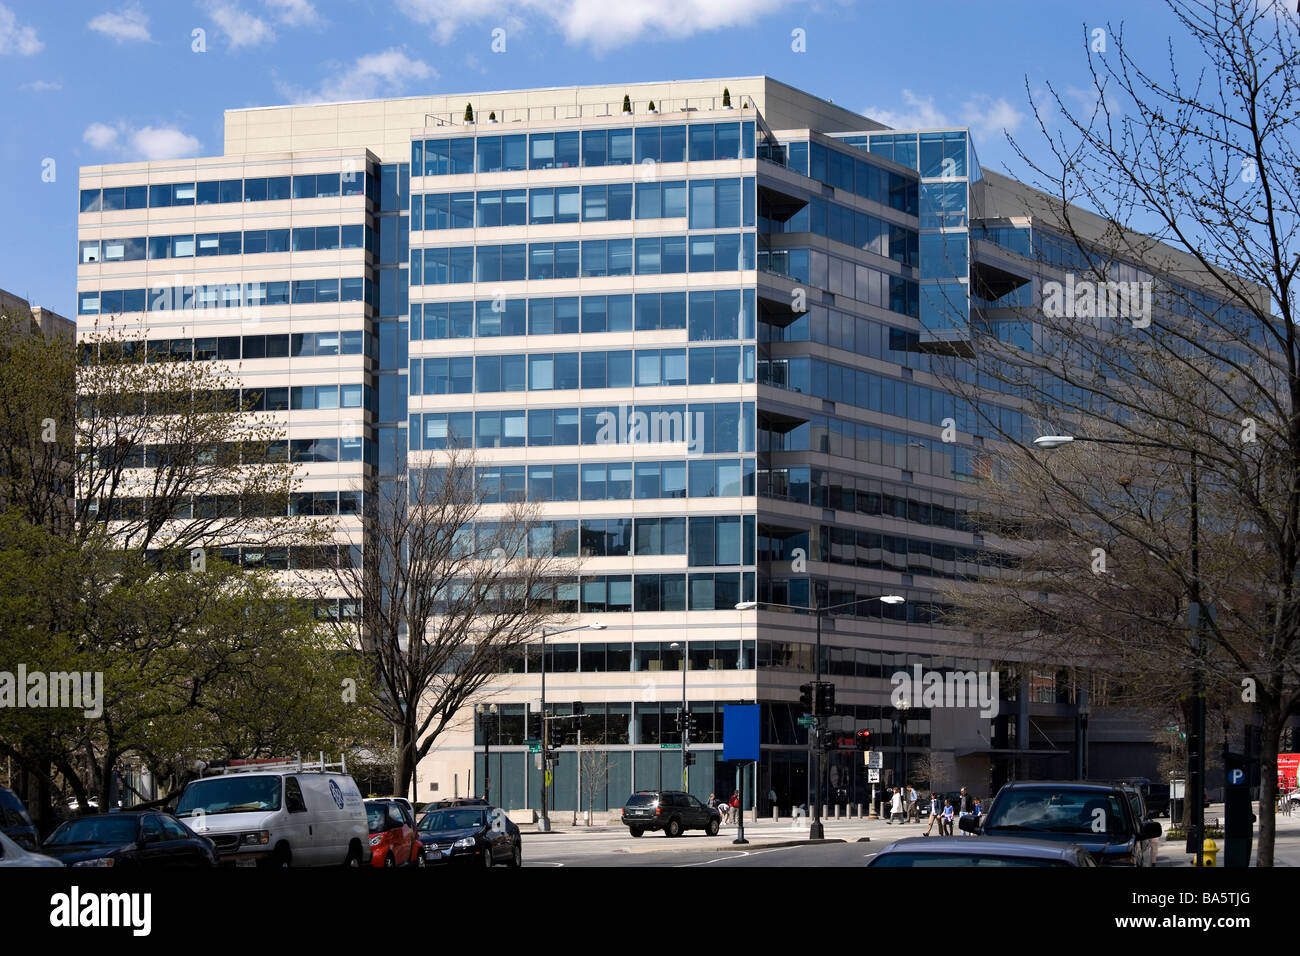 IMF International Monetary Fund Headquarters 2 office on Pennsylvania Avenue & 19 ST Washington DC US USA - Stock Image